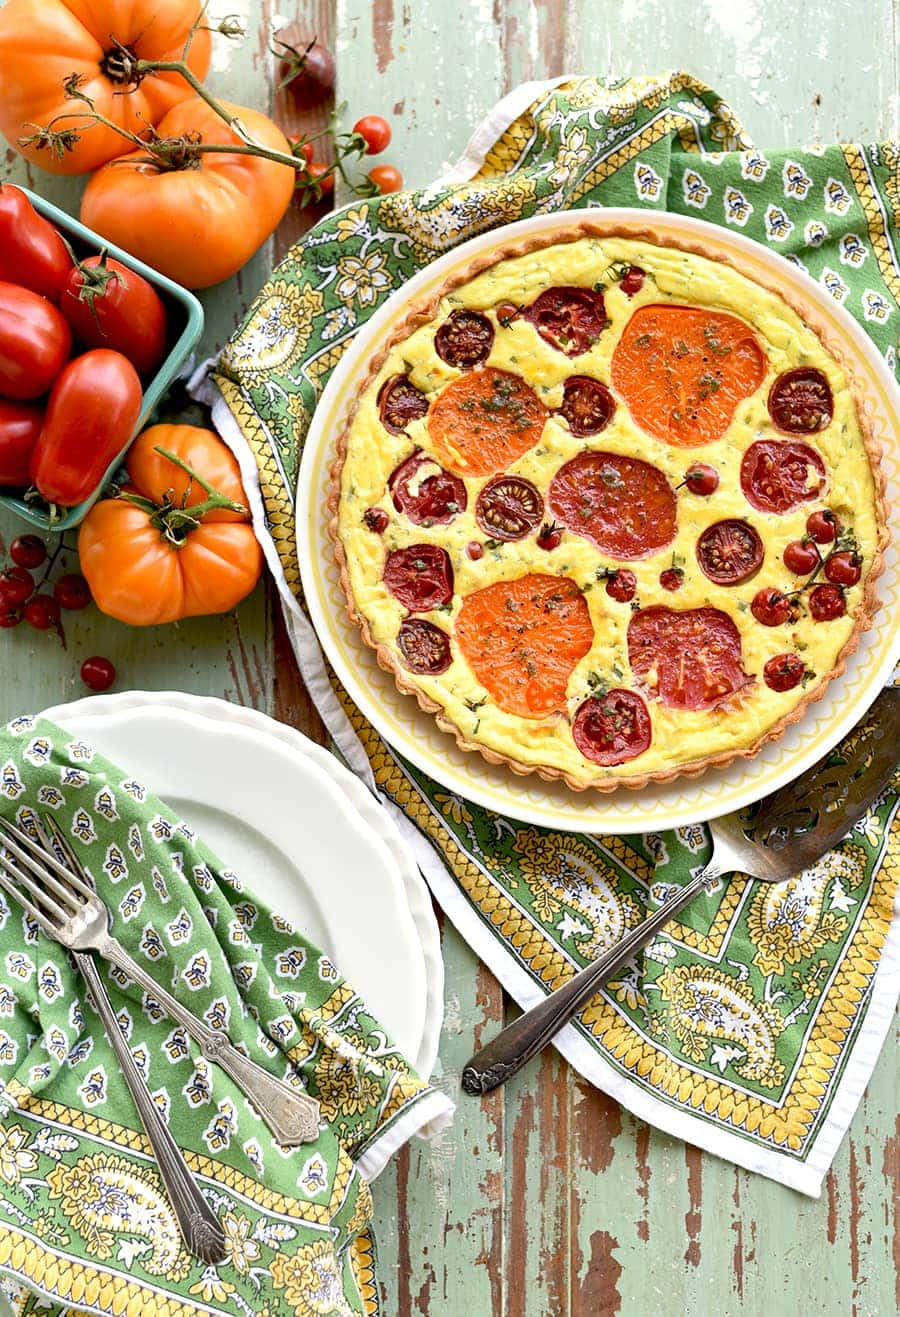 tomato tart filled with heirloom tomatoes of different colors and sizes